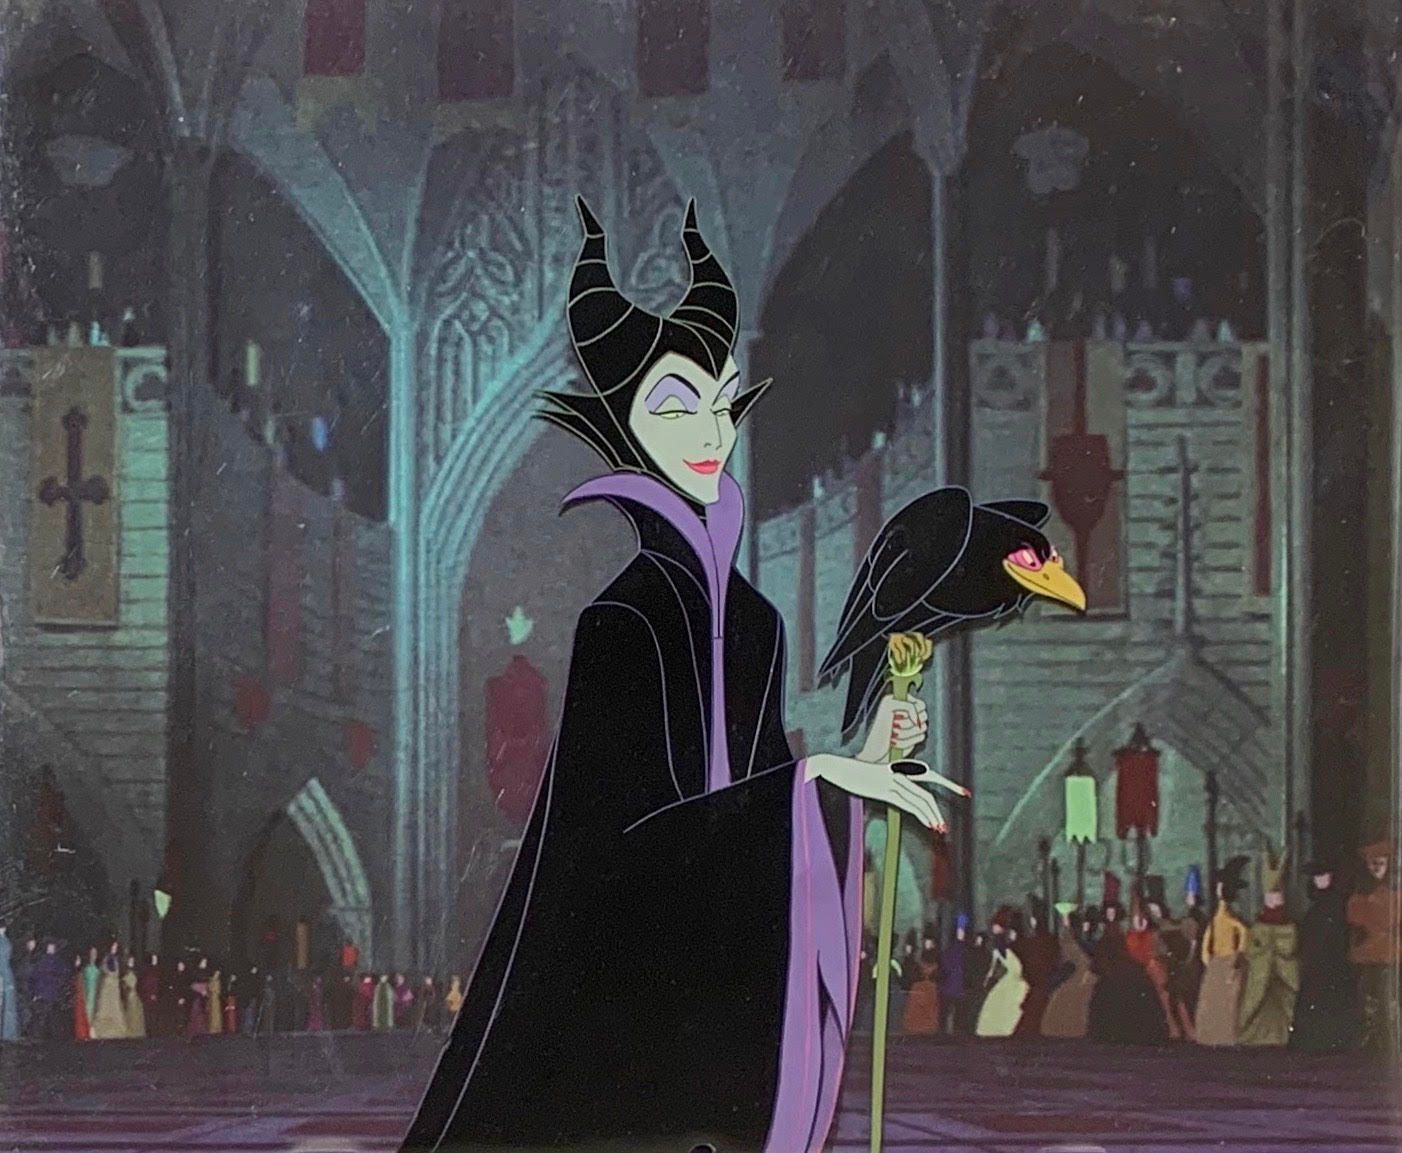 Original Production Animation Cels of Maleficent and Diablo from Sleeping Beauty 1959